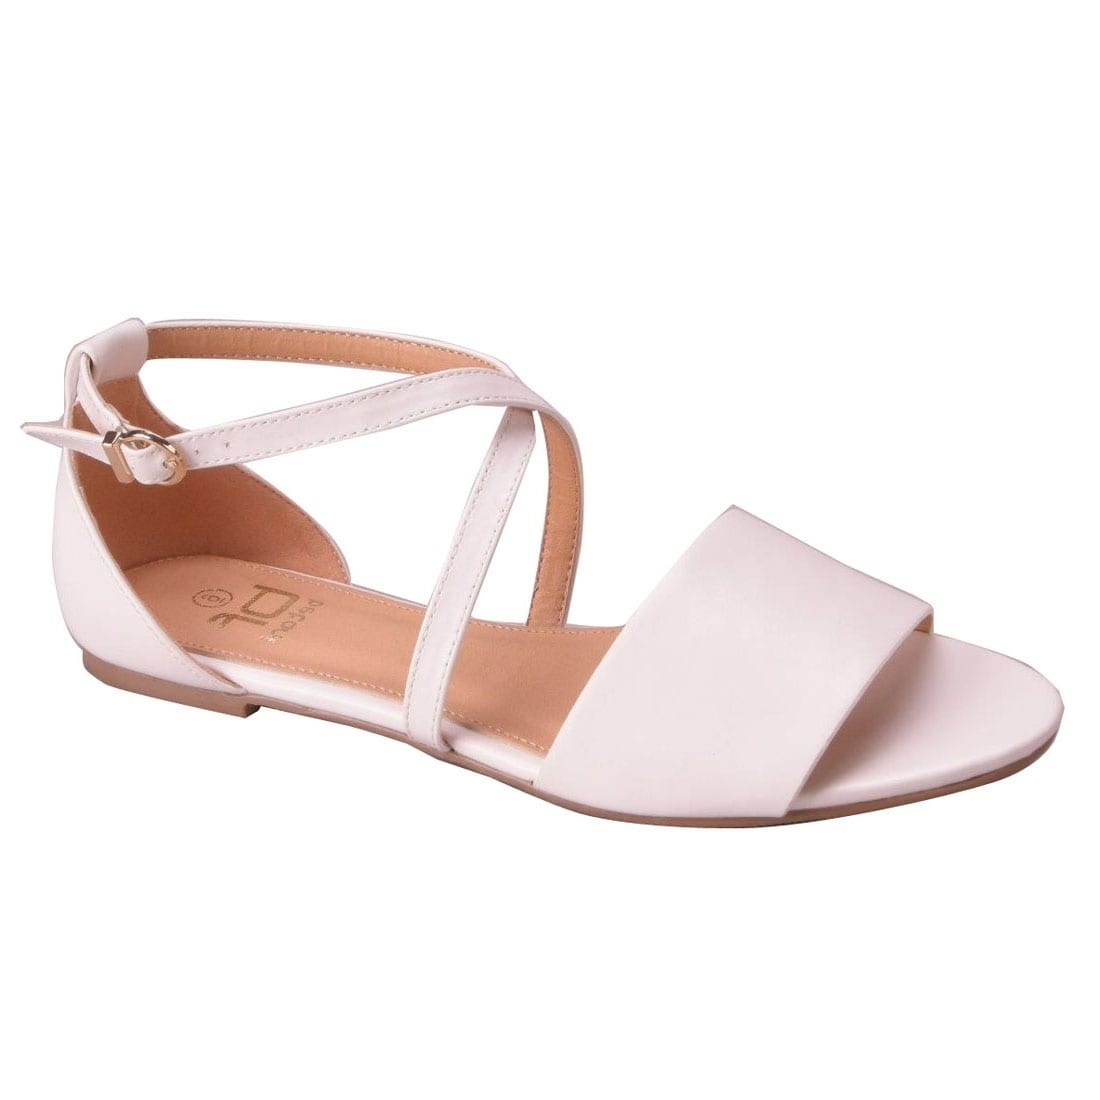 d6f962c21a12 Shop BETANI Women s Peep Toe Criss-Cross Ankle Buckle Strap Flat Sandals -  Free Shipping On Orders Over  45 - Overstock - 19760536